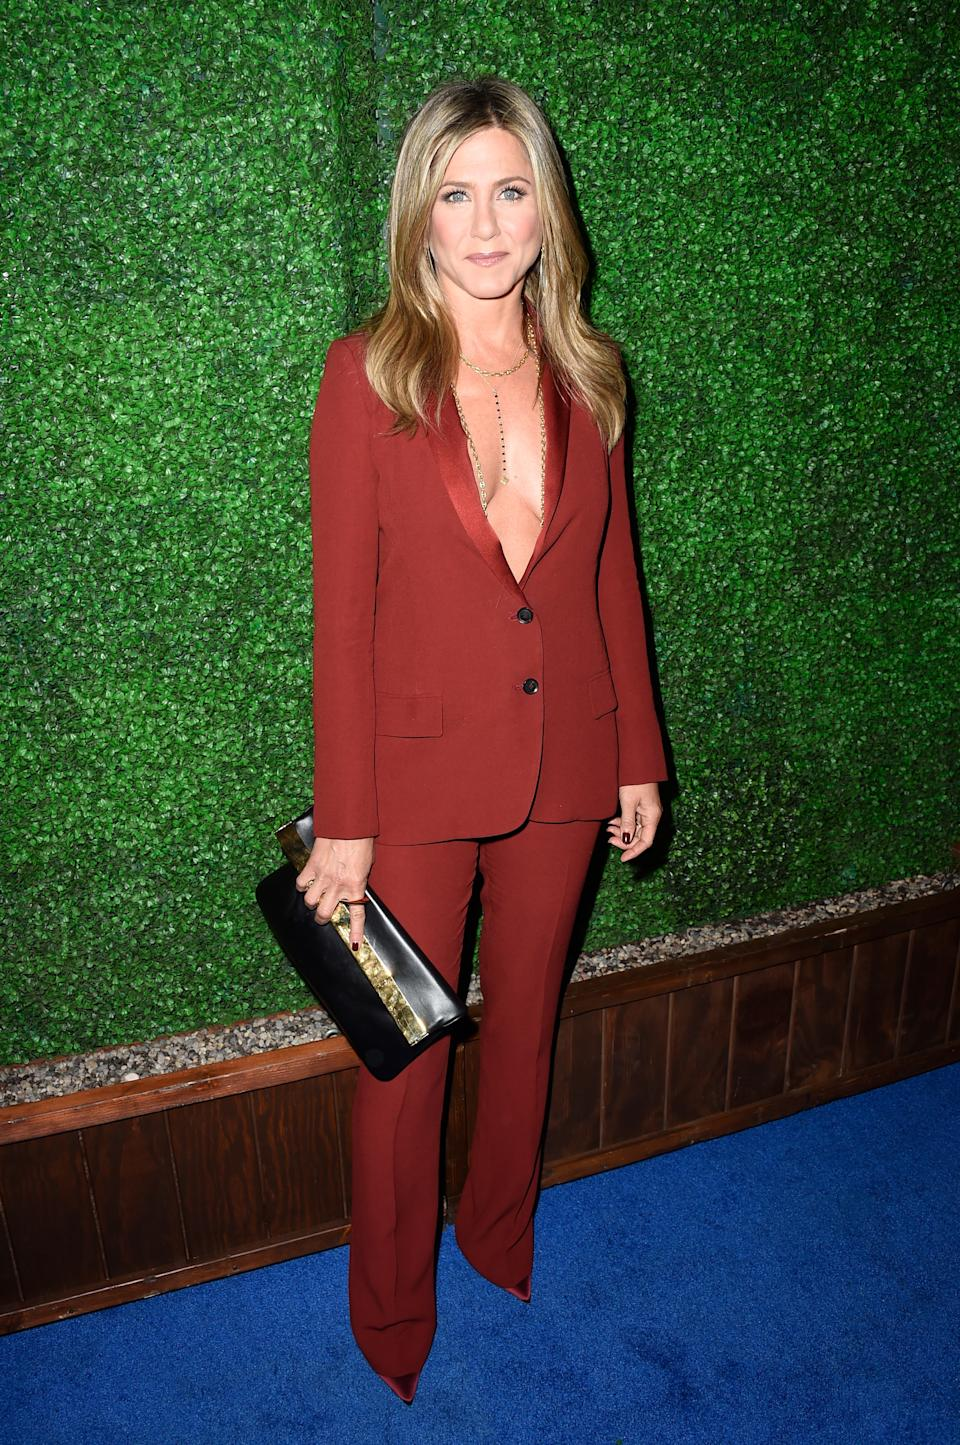 This burnt red Gucci suit with layers of gold necklaces was a hit at the 2015 Critics Choice Awards.